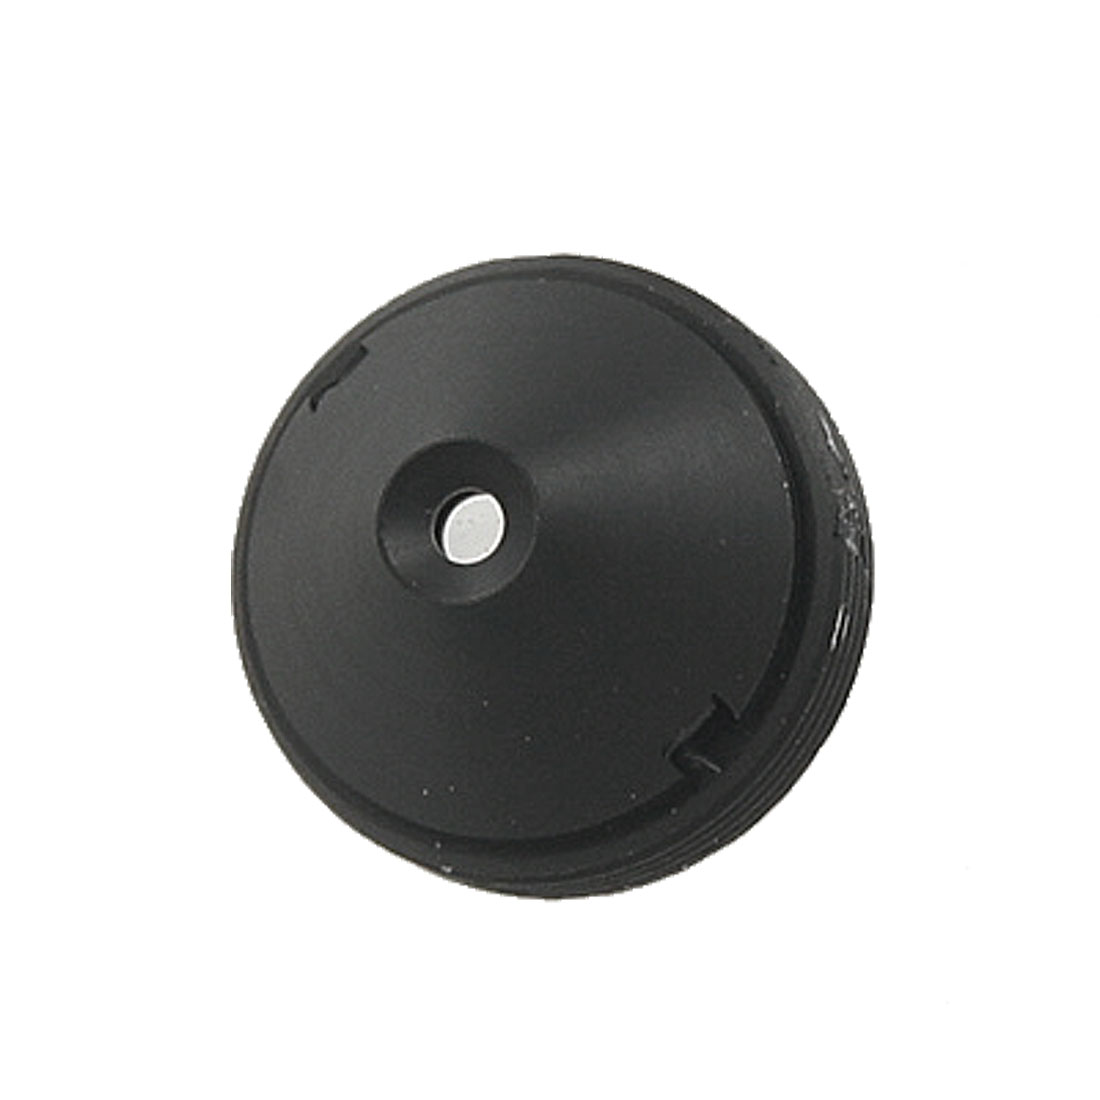 3.7mm F2.0 Pinhole Fixed Iris Lens for 12x0.5mm mount Camera